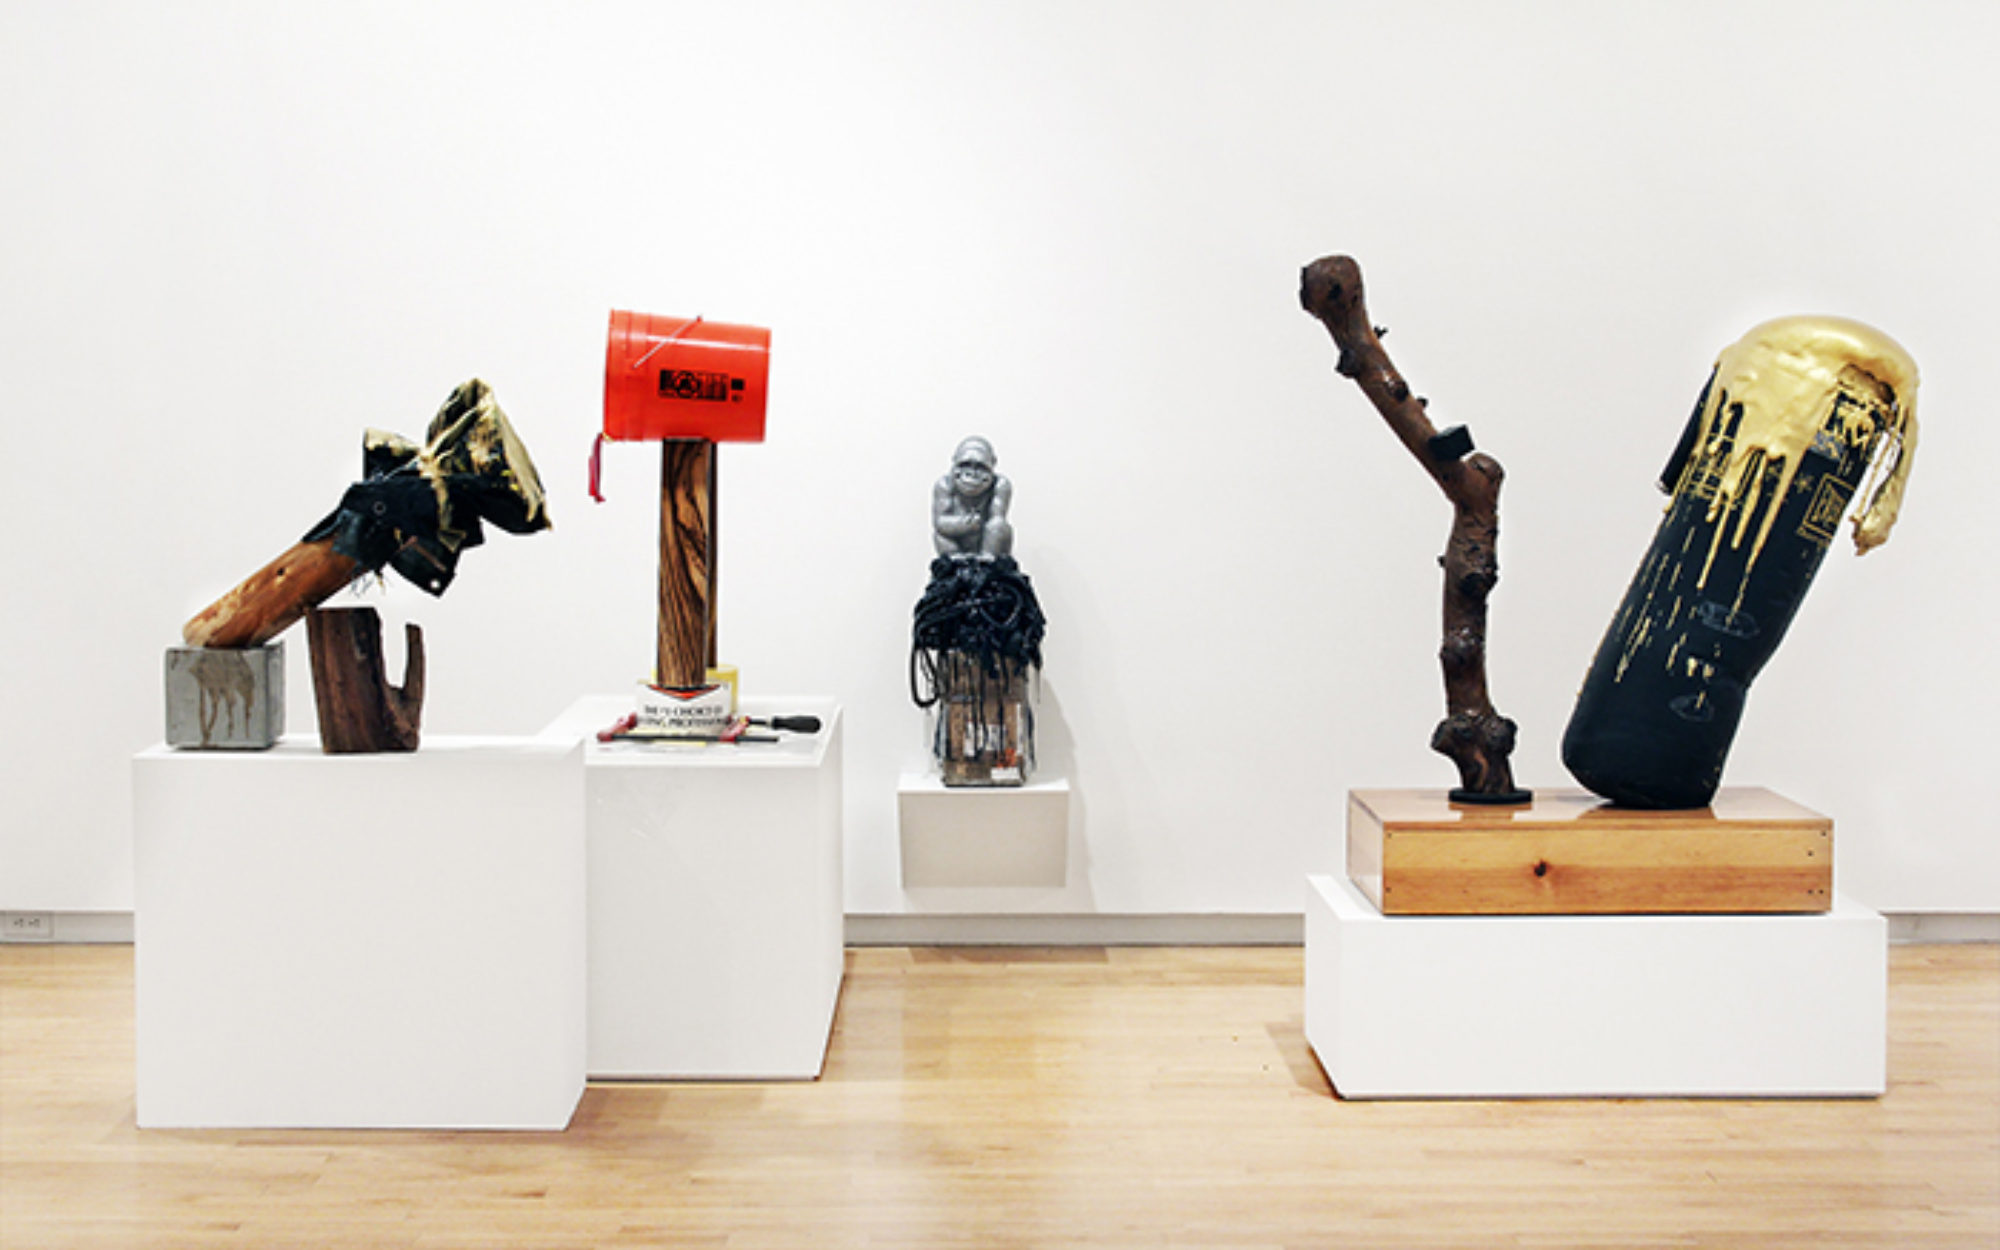 Four sculptural works sit on white platforms in gallery